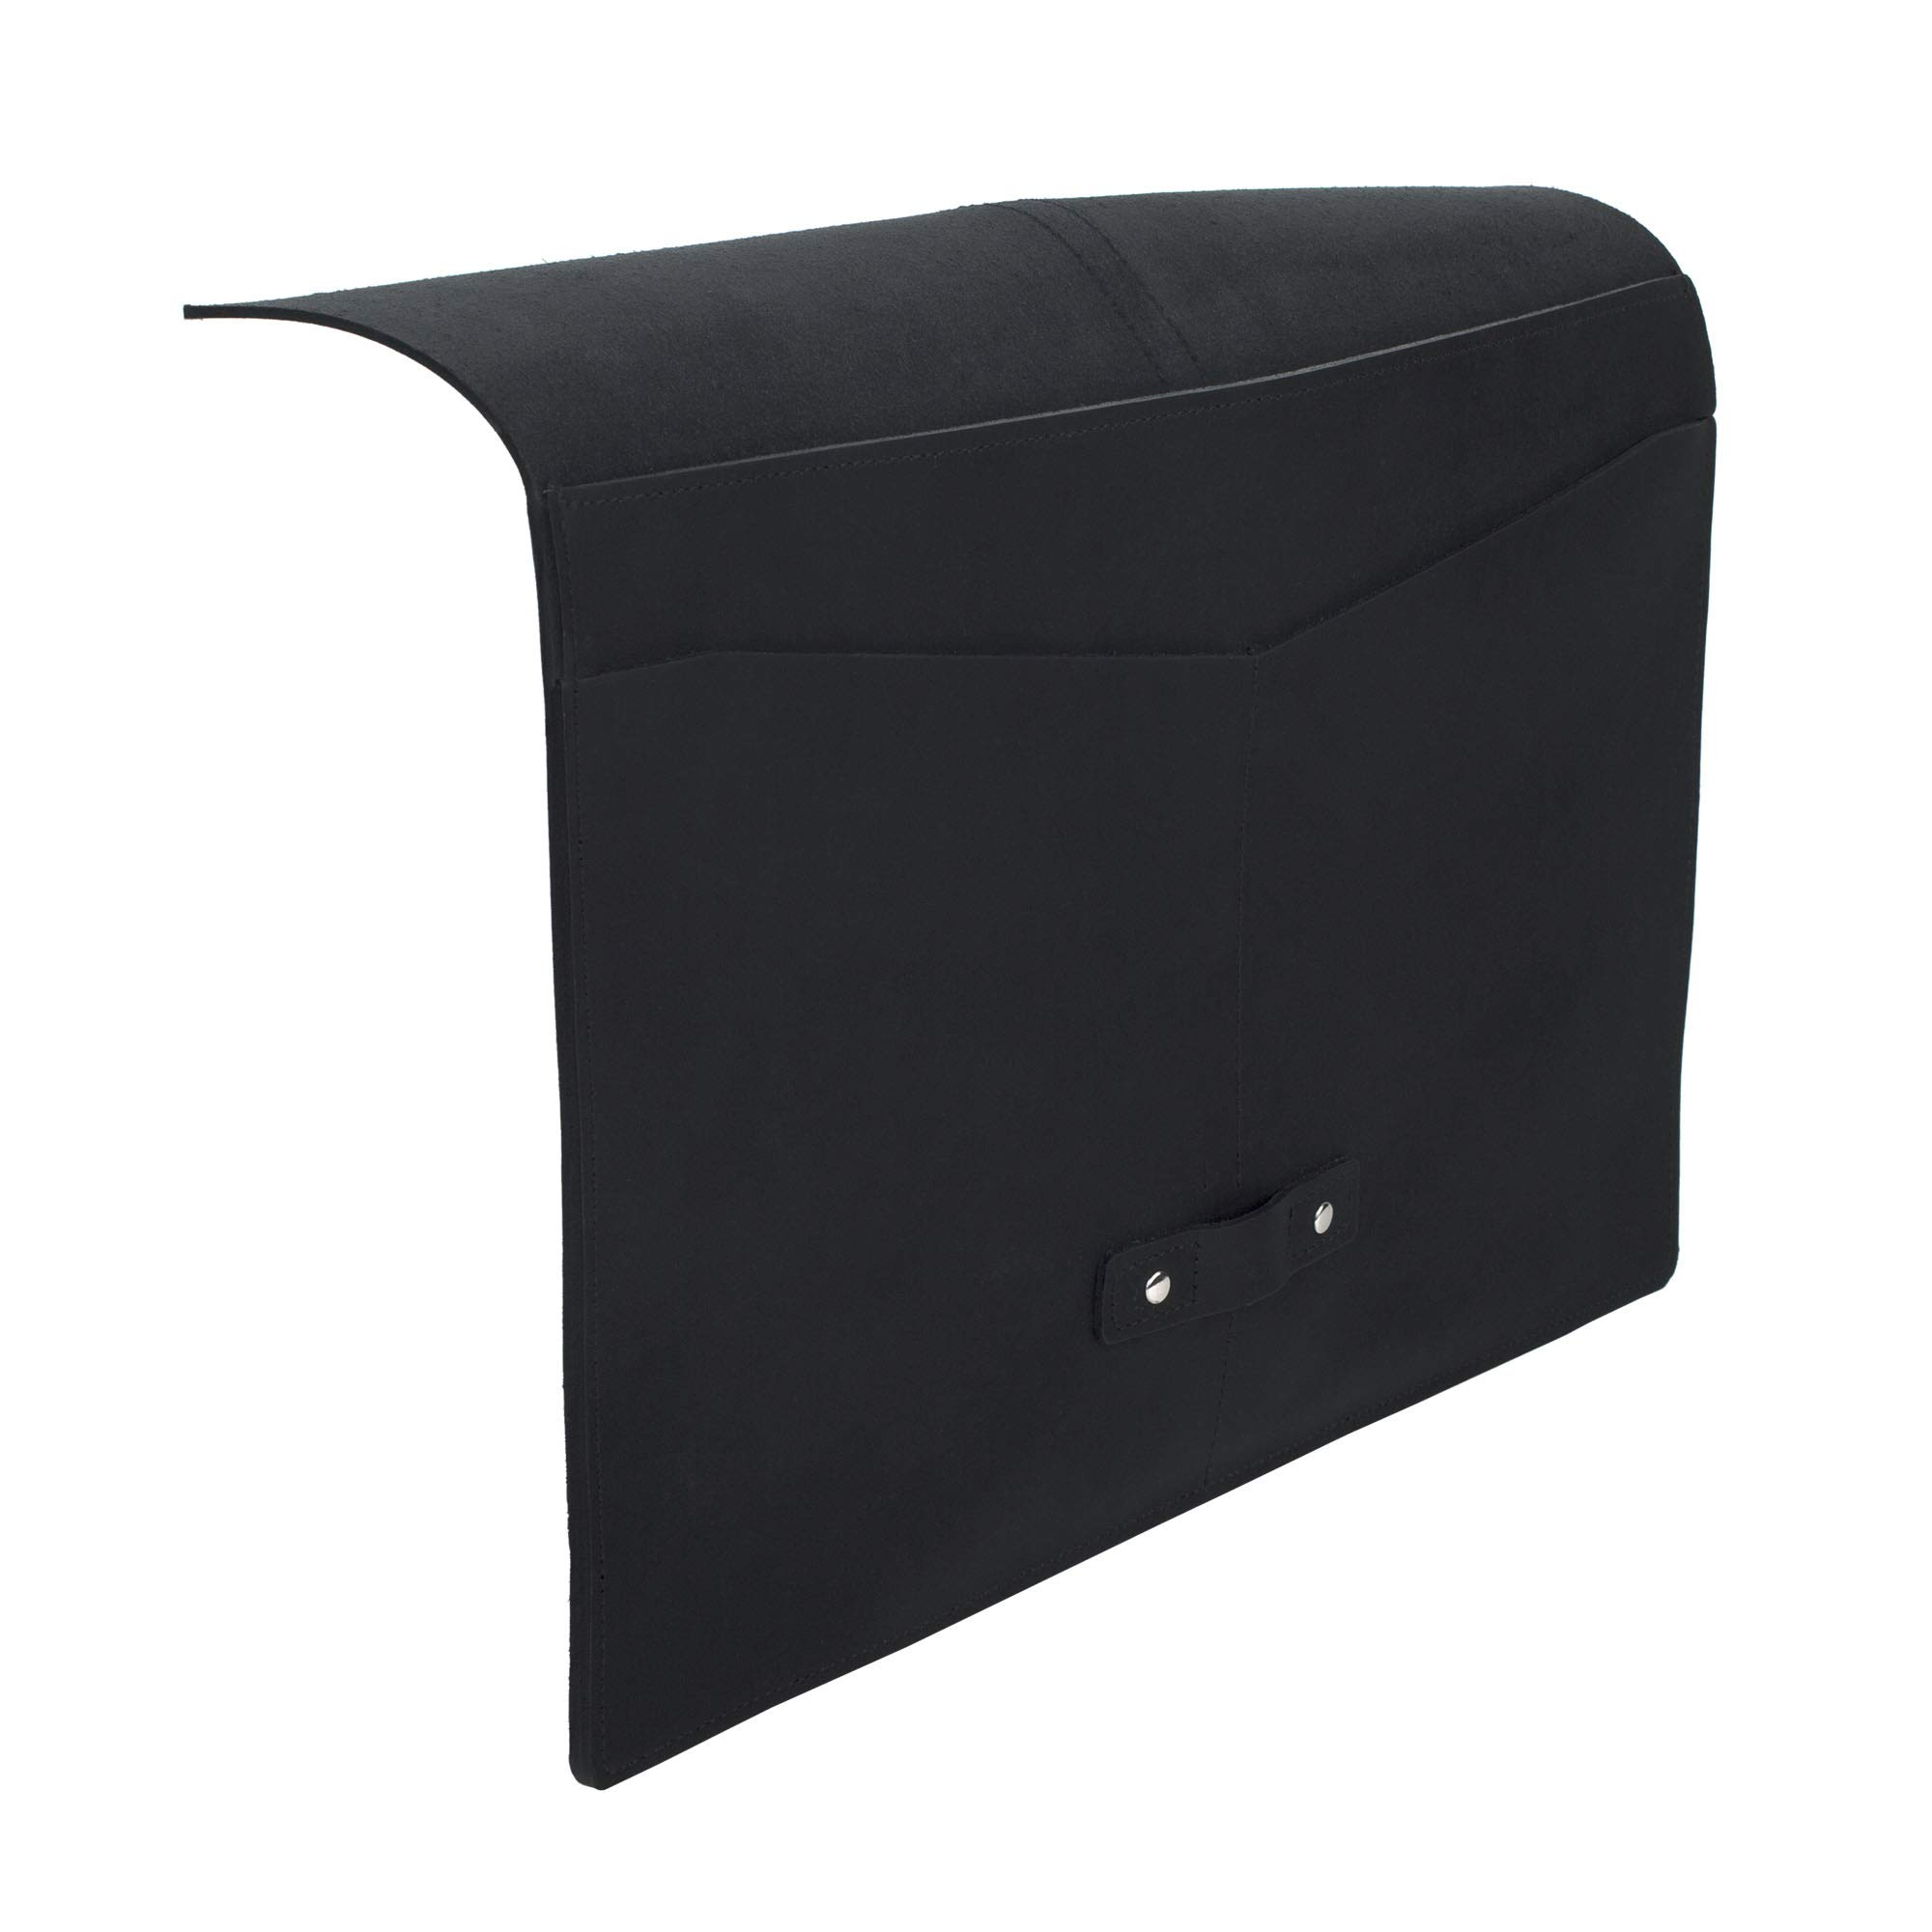 SLATE COLLECTION Belltown Small Laptop Sleeve, Full-Grain Leather (Midnight, fits 13'' Laptop) by SLATE COLLECTION (Image #7)